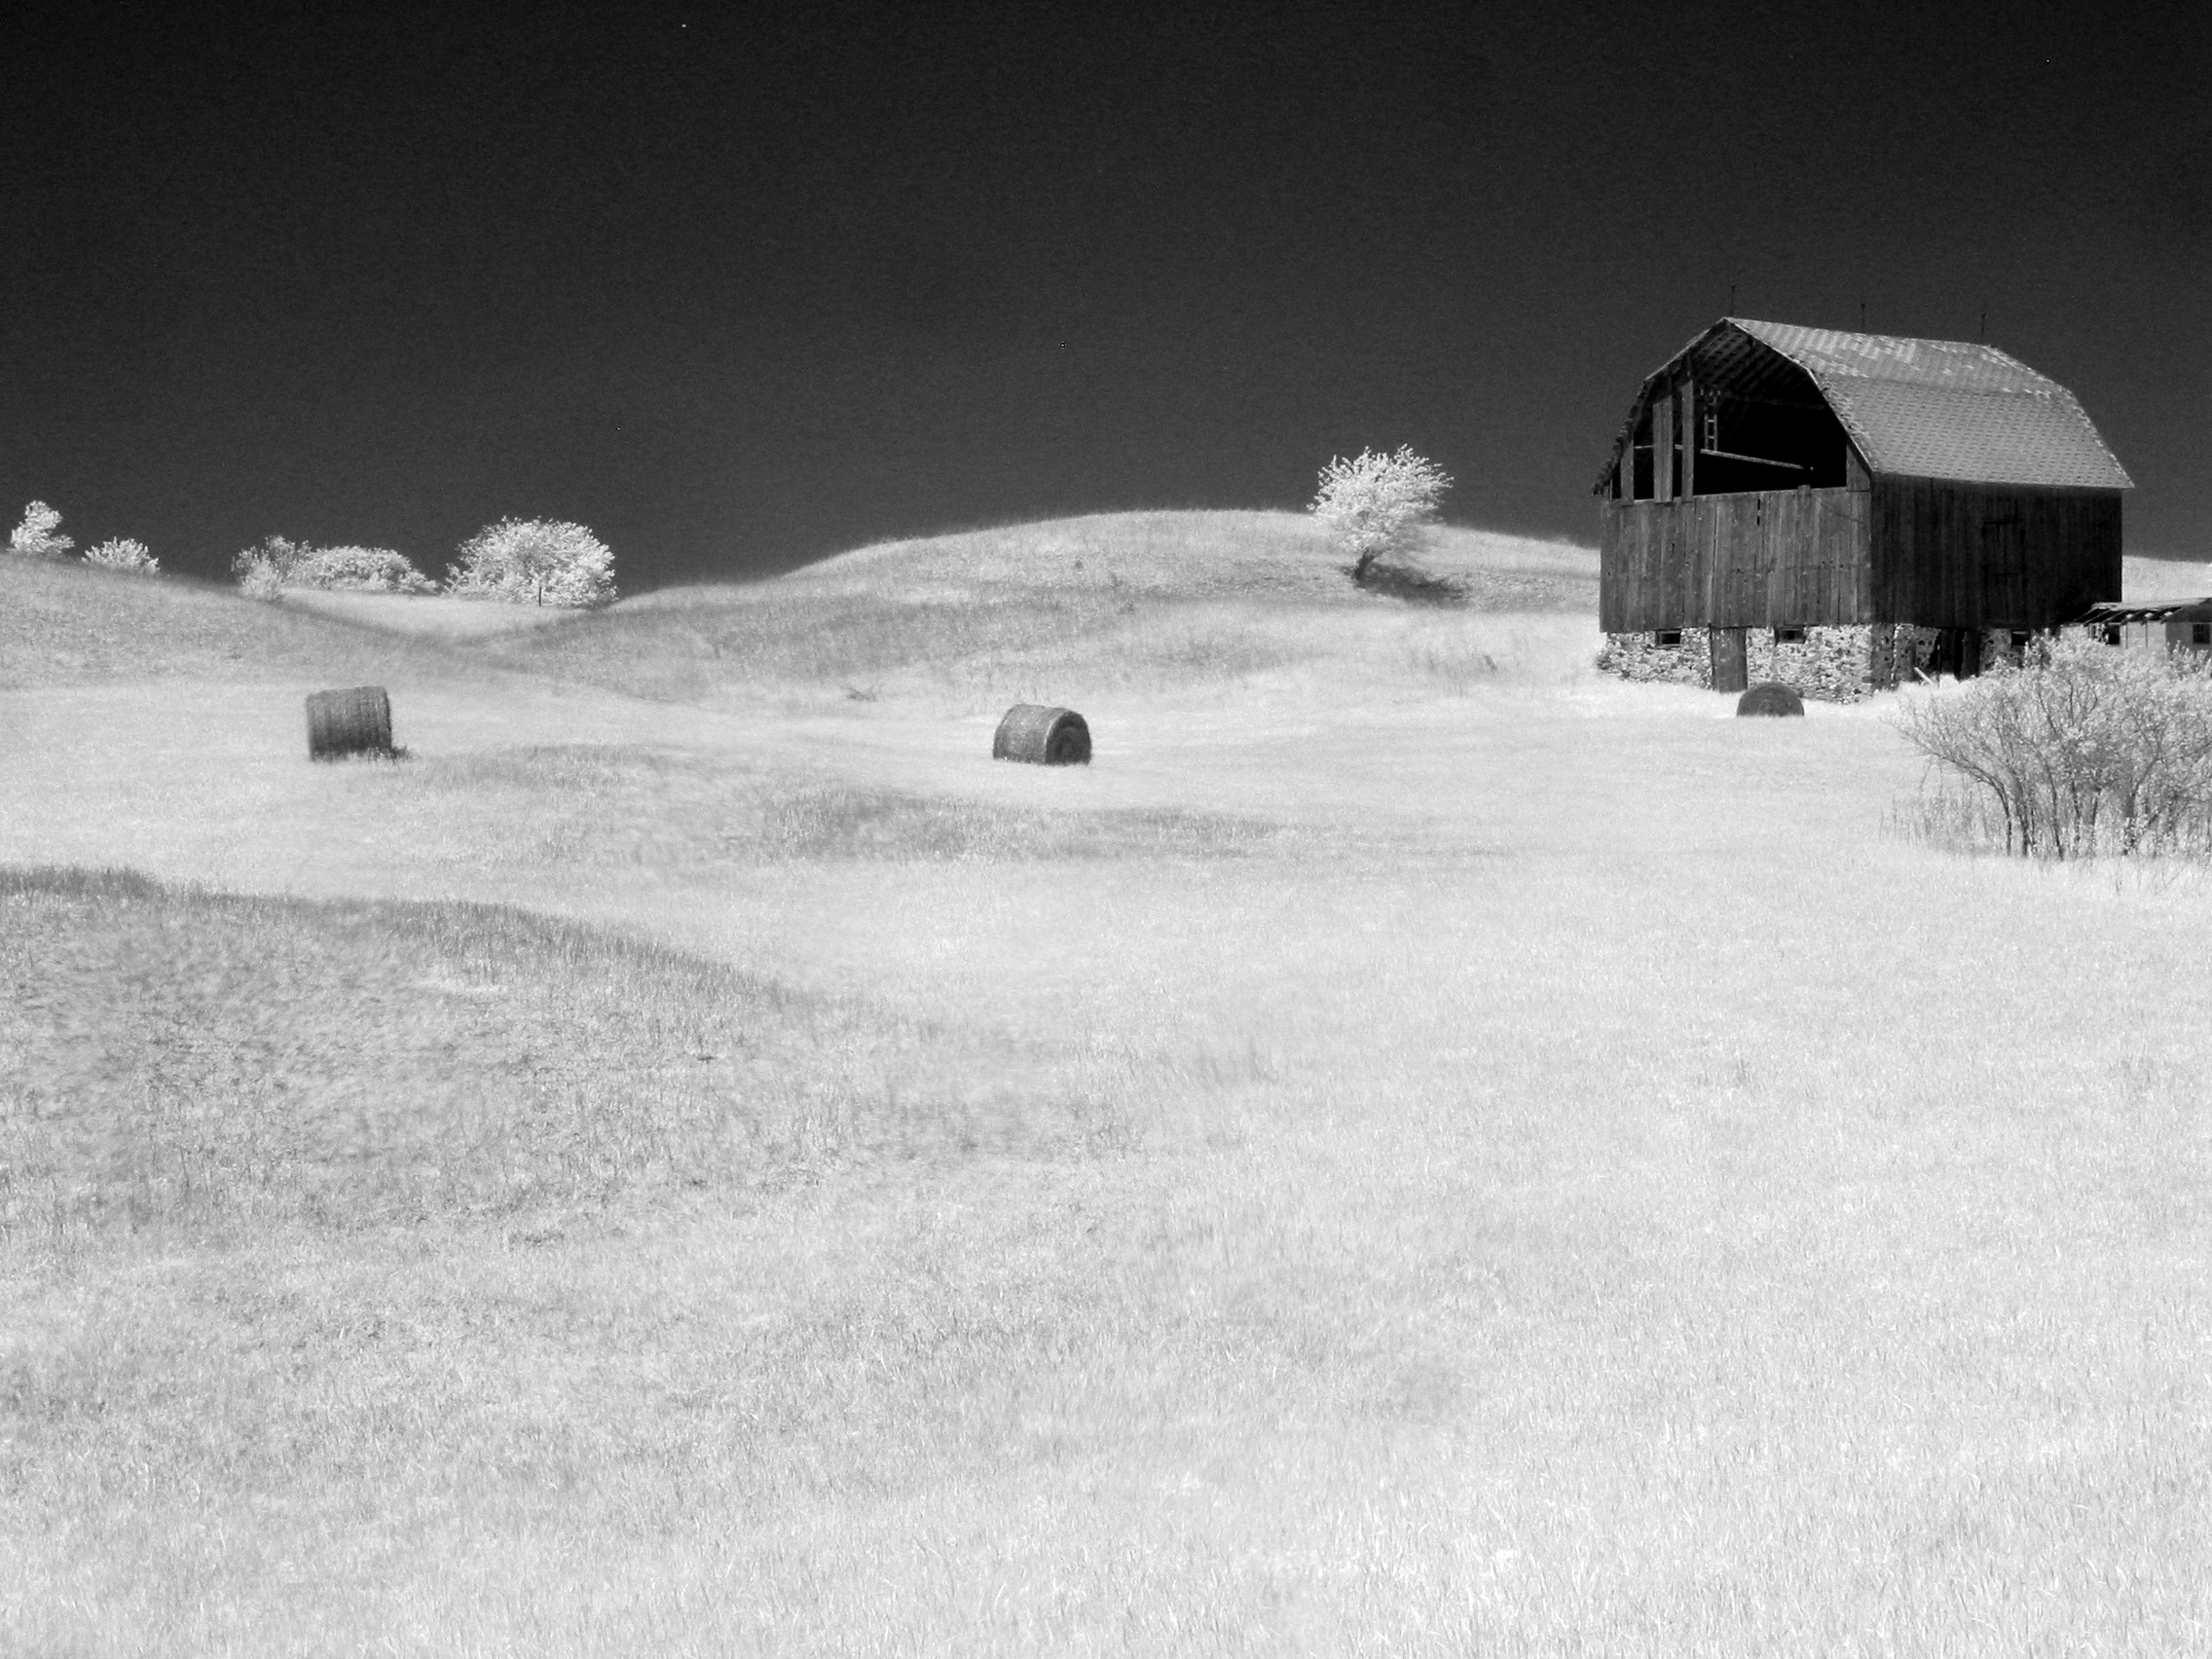 The Barn and Hay Bails